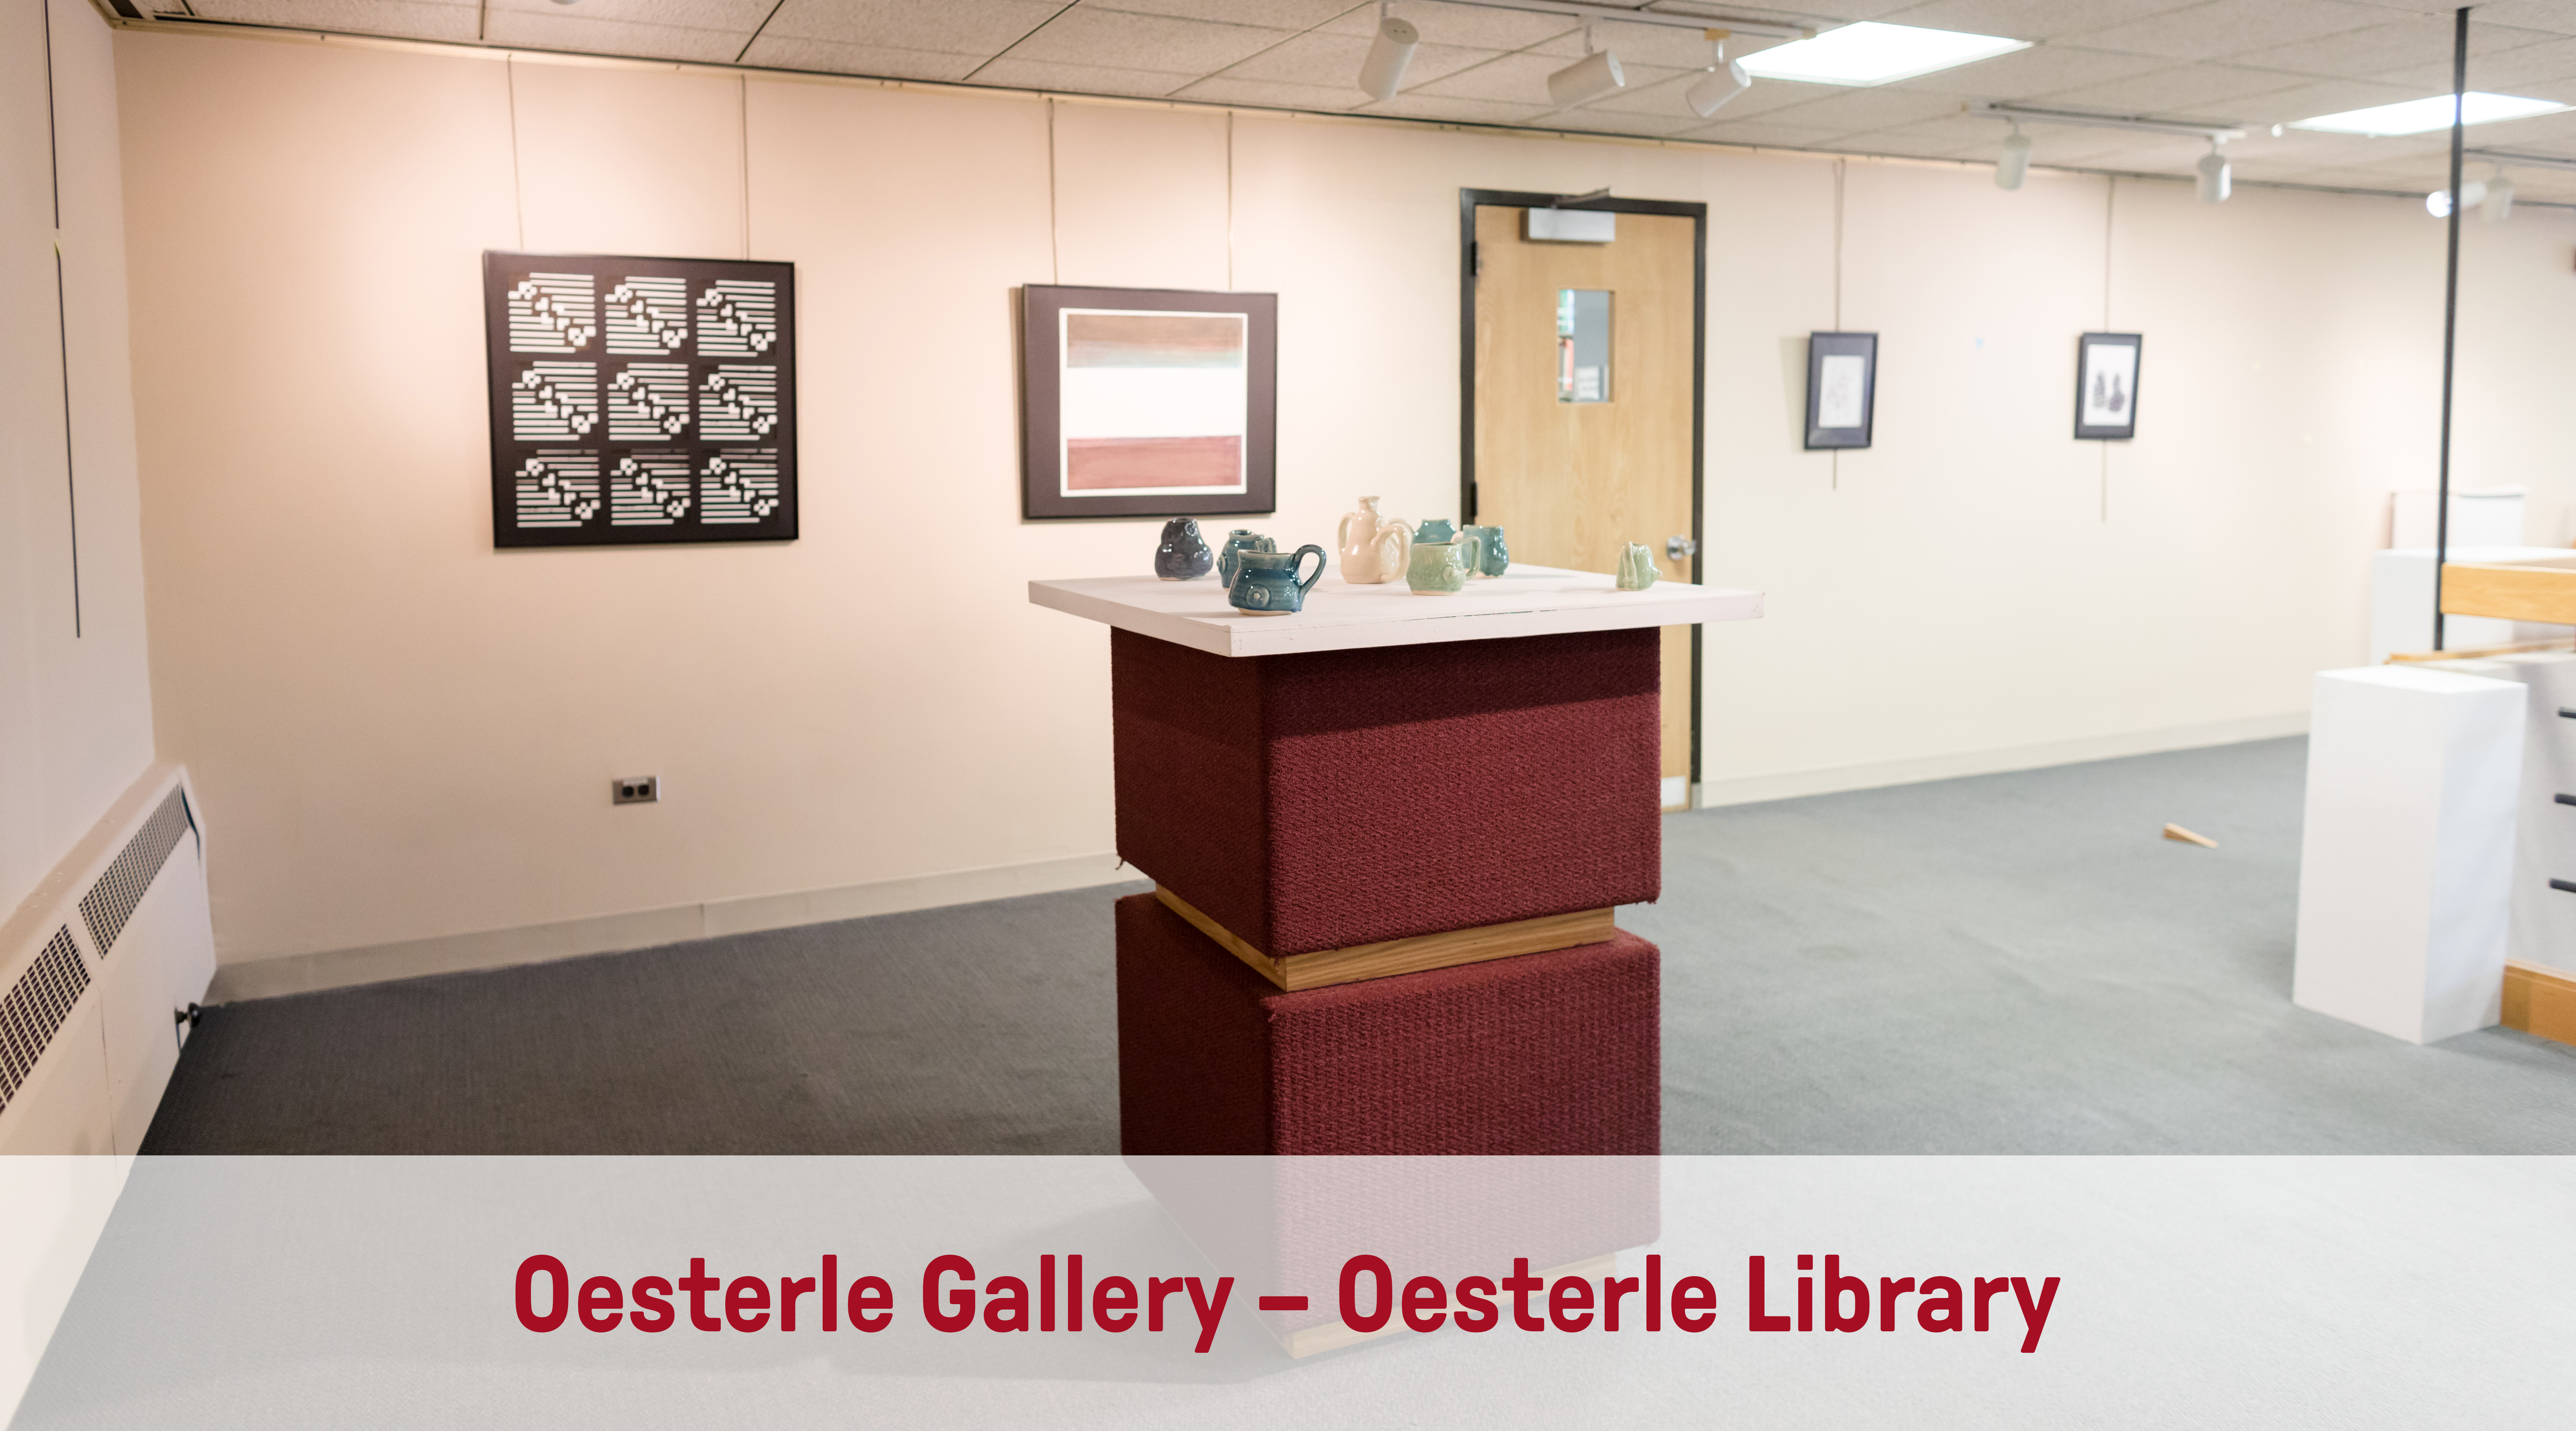 Oesterle Gallery – Oesterle Library